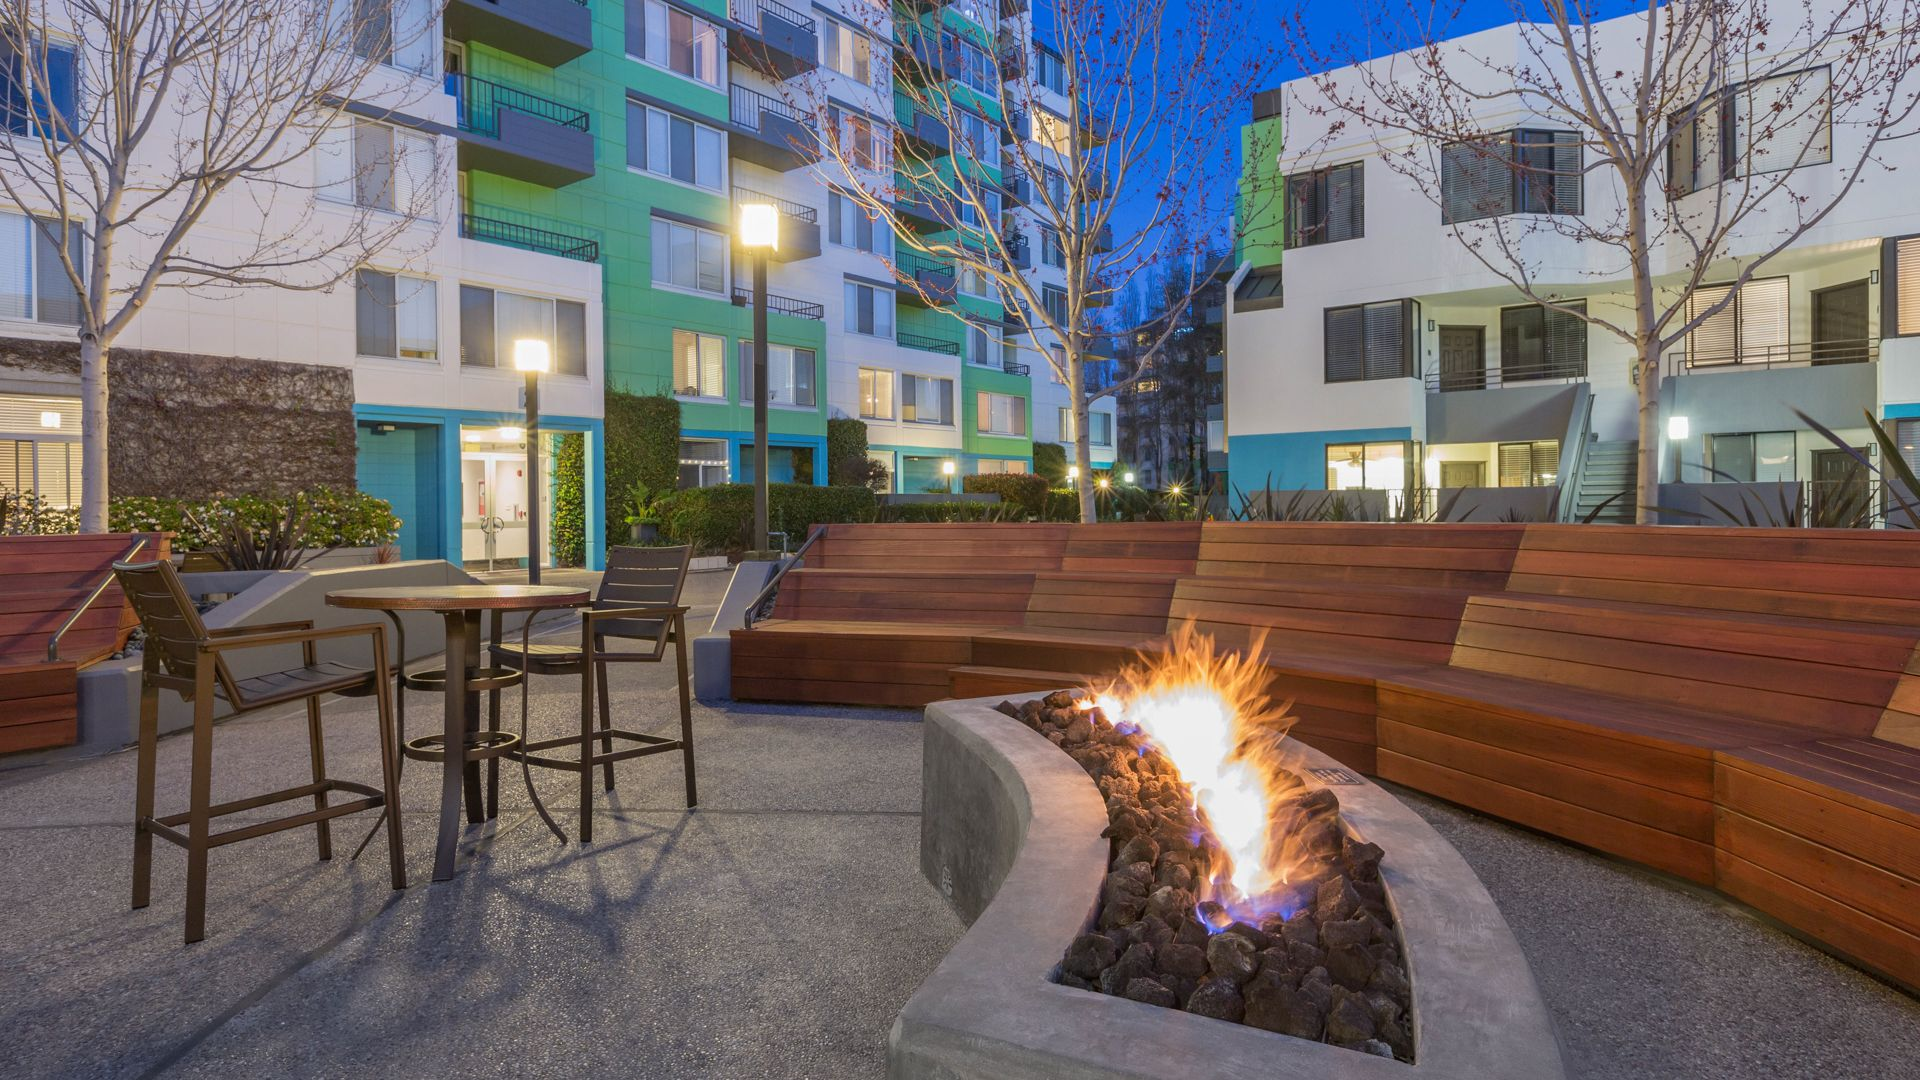 SoMa Square Apartments - Courtyard